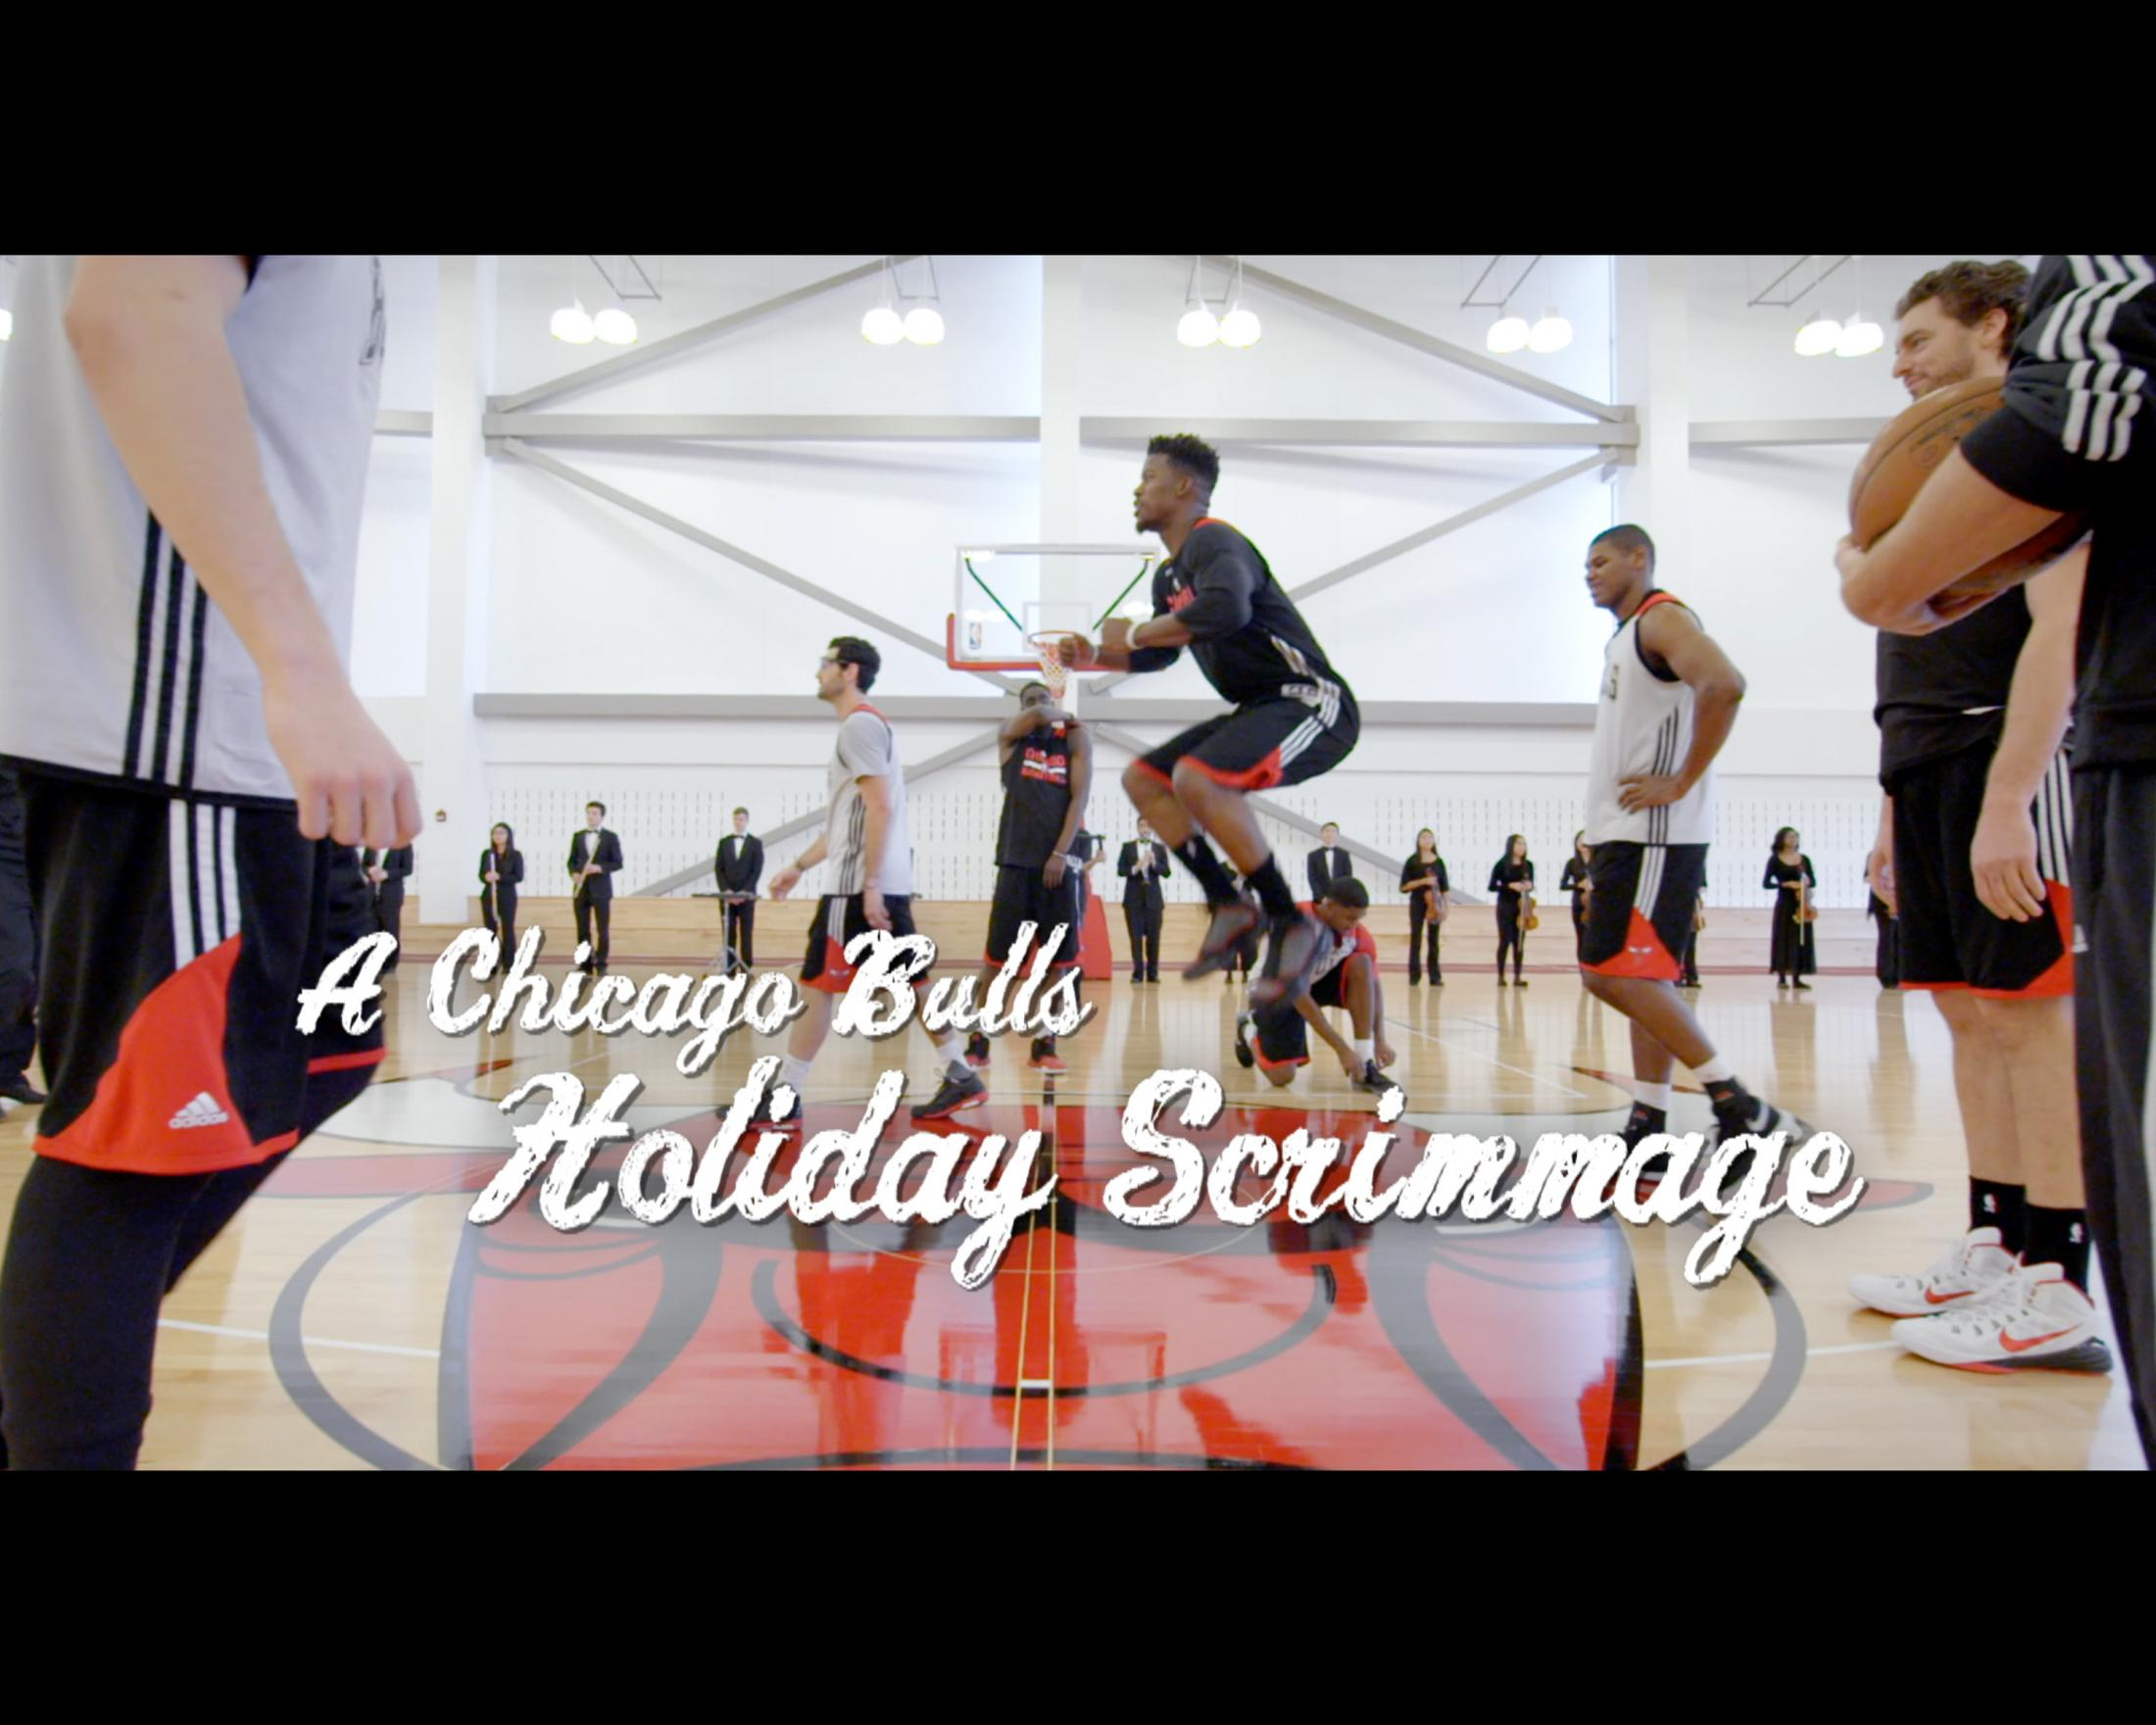 Thumbnail for A Chicago Bulls Holiday Scrimmage